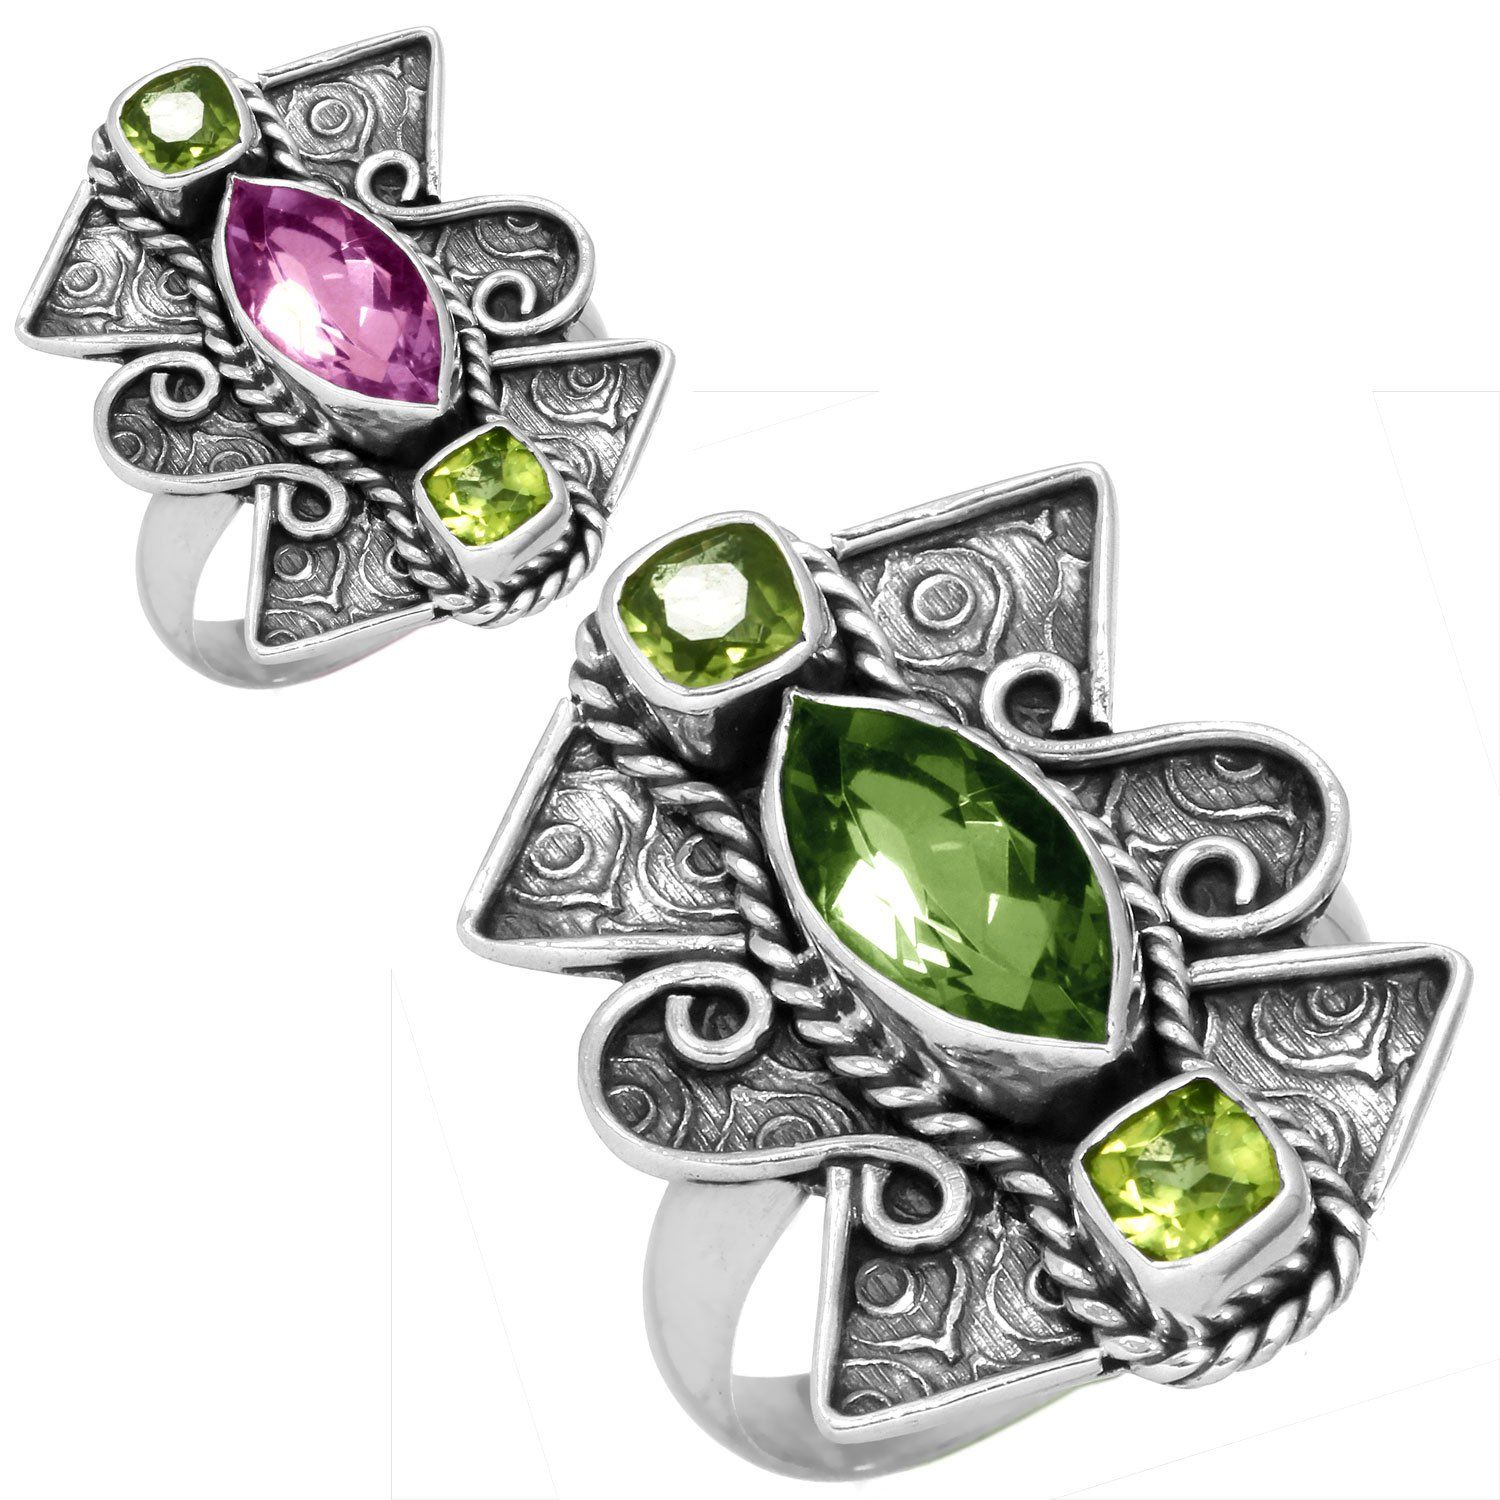 c7f11fddc Solid 925 Sterling Silver Ring Alexandrite Color Change Peridot Gemstone  Latest Jewelry Size 6 **